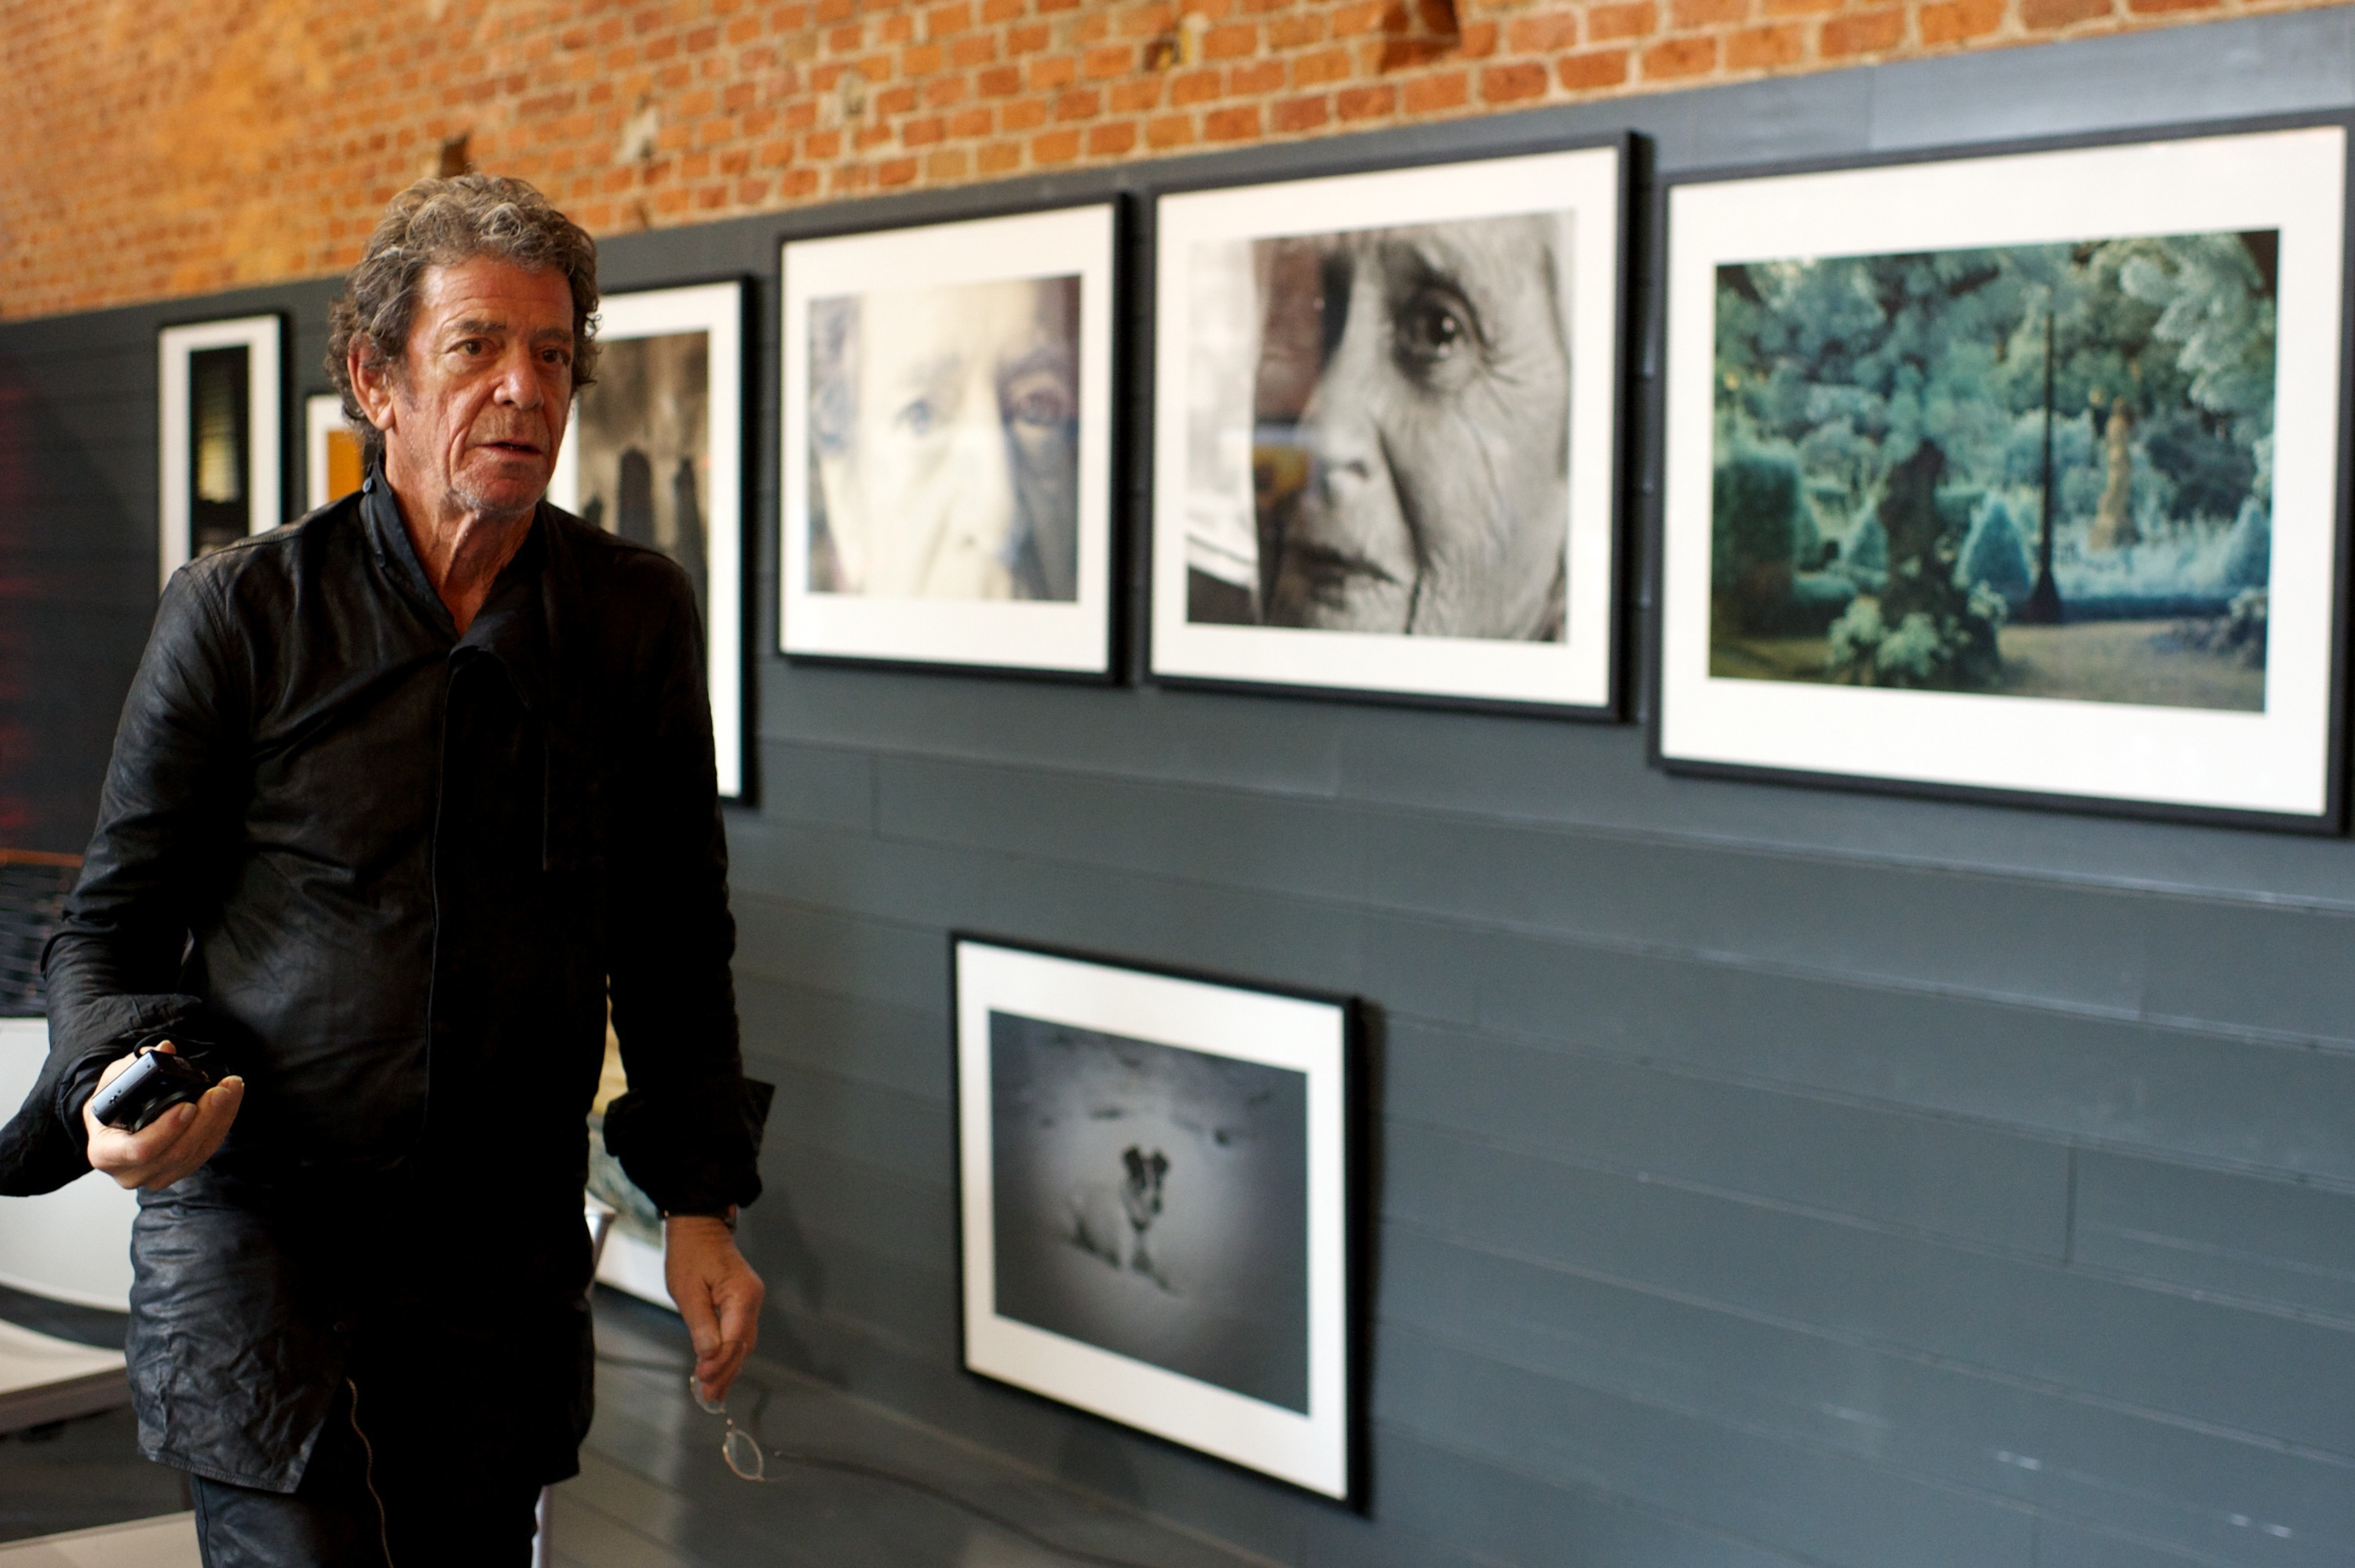 Reed presents his photography exhibition at the Matadero cultural center in Madrid on Nov. 16, 2012.